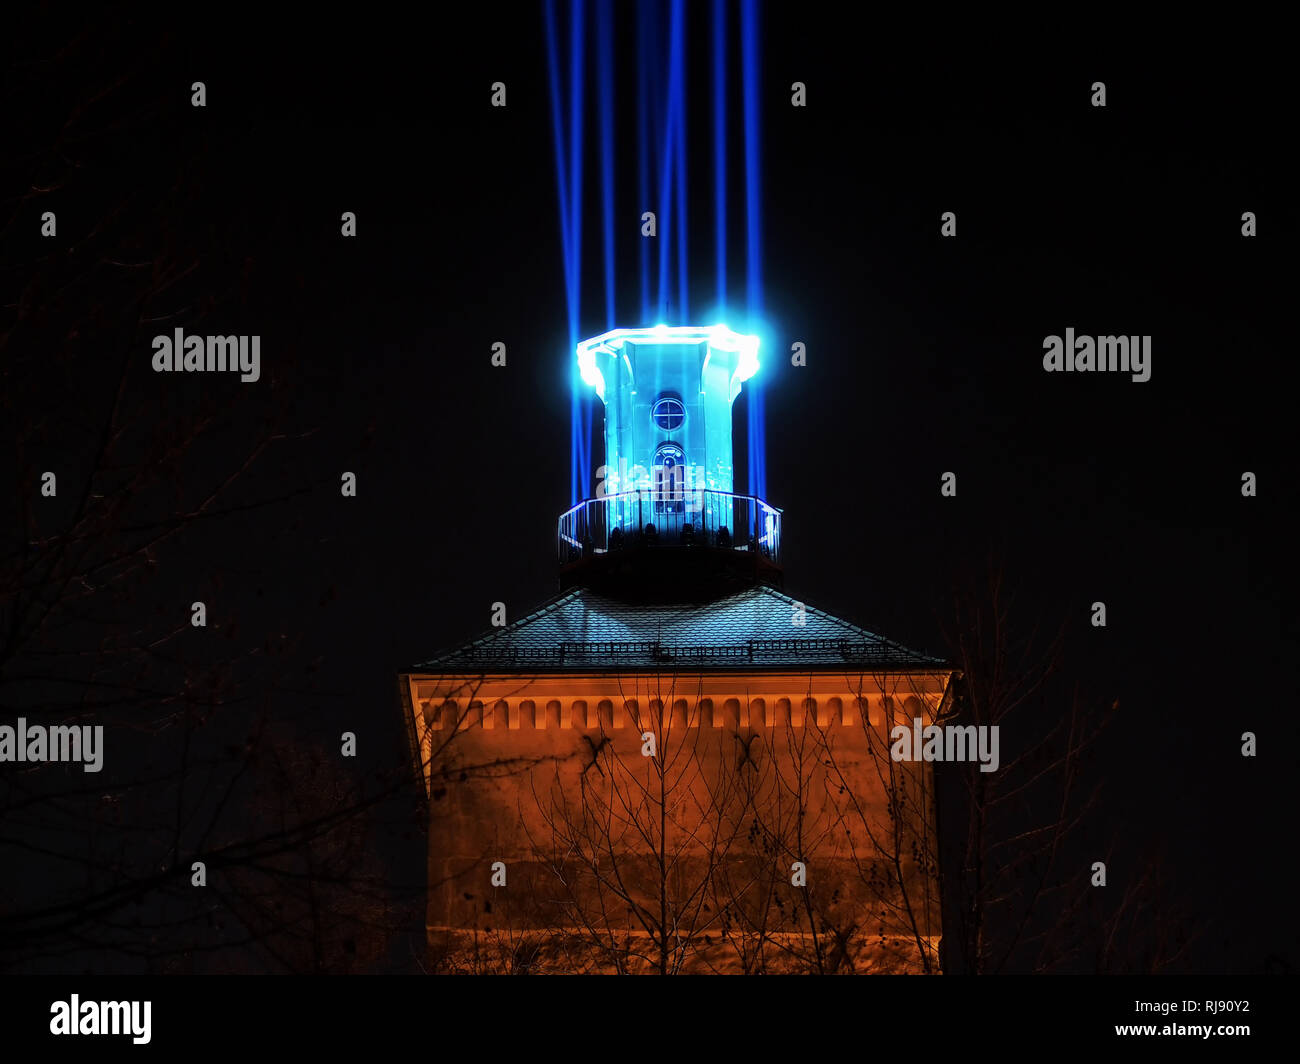 Festival of lights Zagreb: The Lighthouse, light installation at